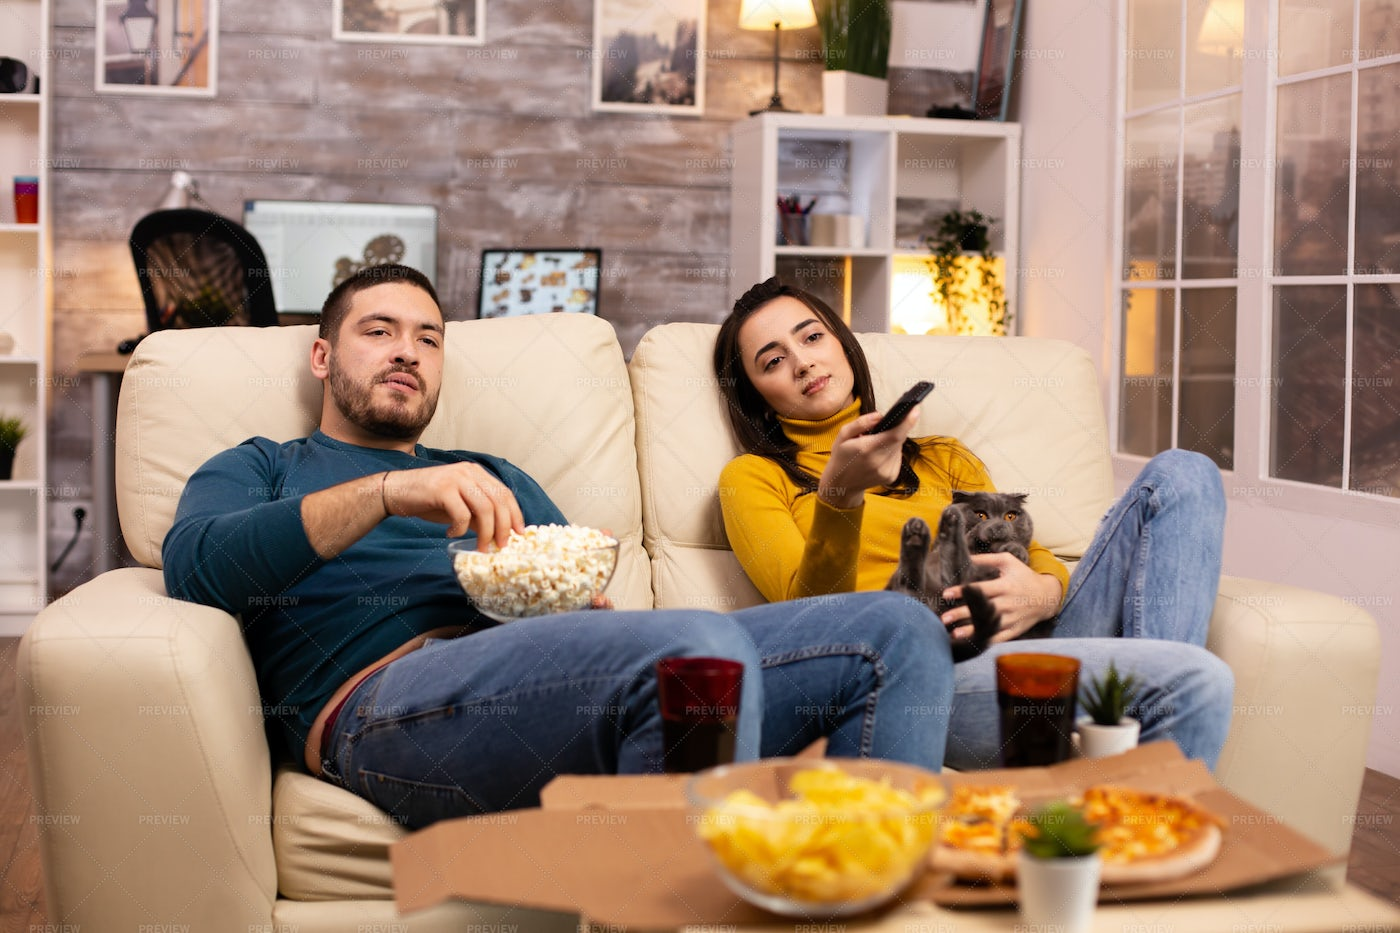 Bored And Lazy Couple: Stock Photos